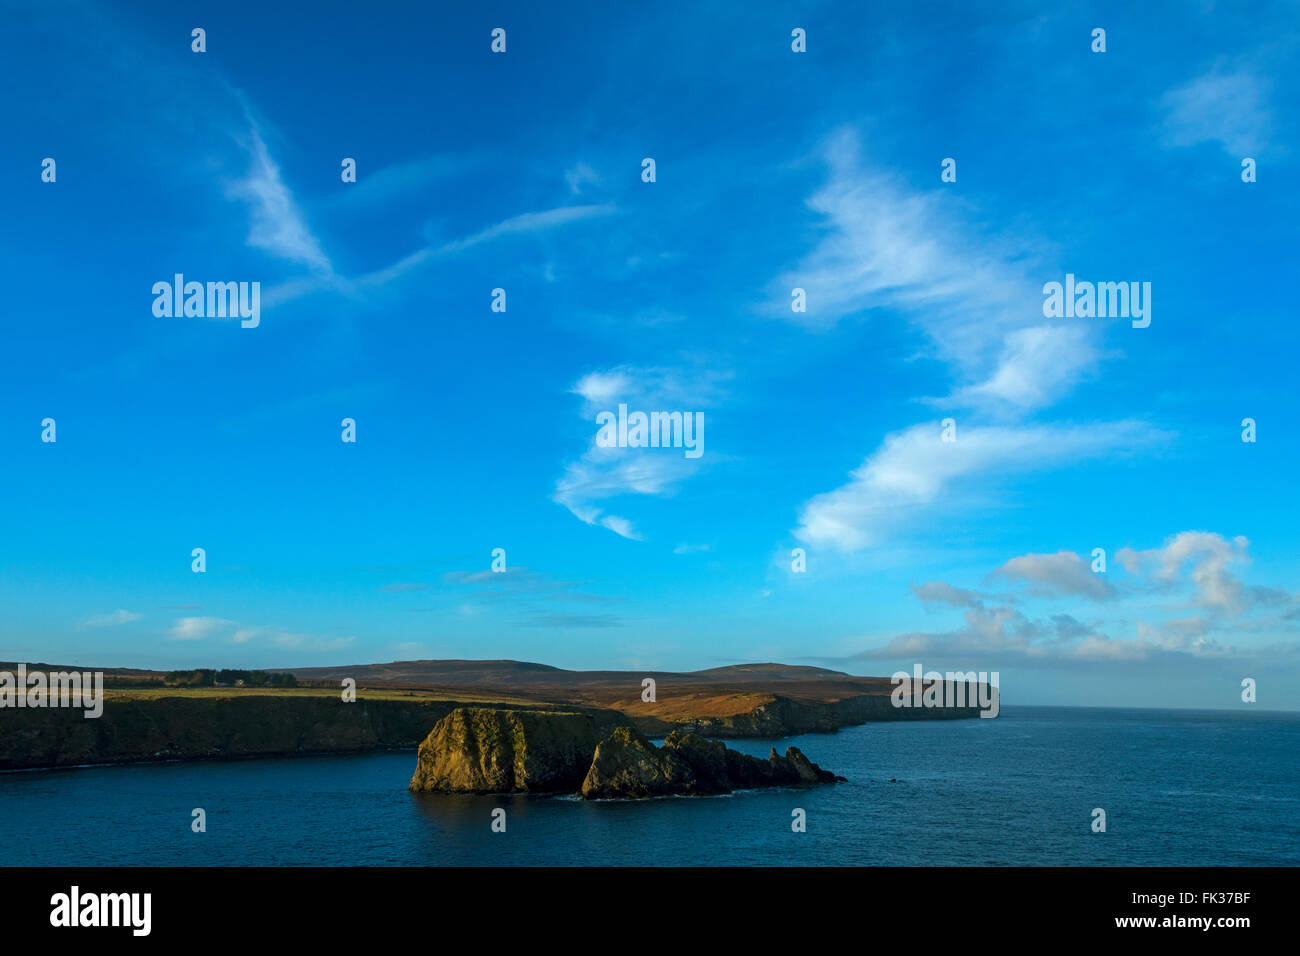 Dunnet Head from the coastal path at Brough Bay, Caithness, Scotland, UK - Stock Image